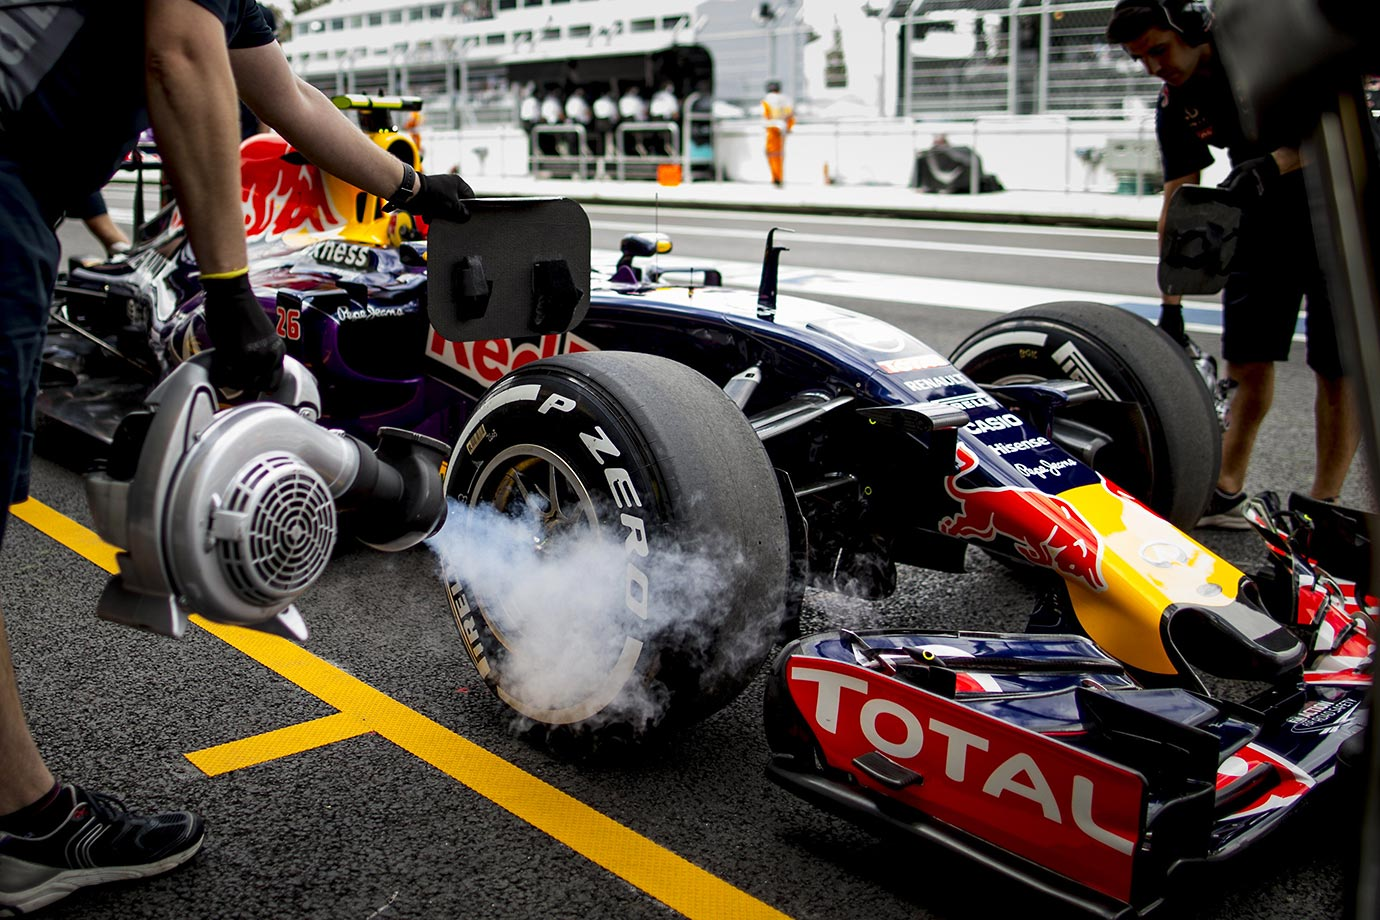 Are they trying to cool the tires during the 2015 Formula One World Championship in Mexico?